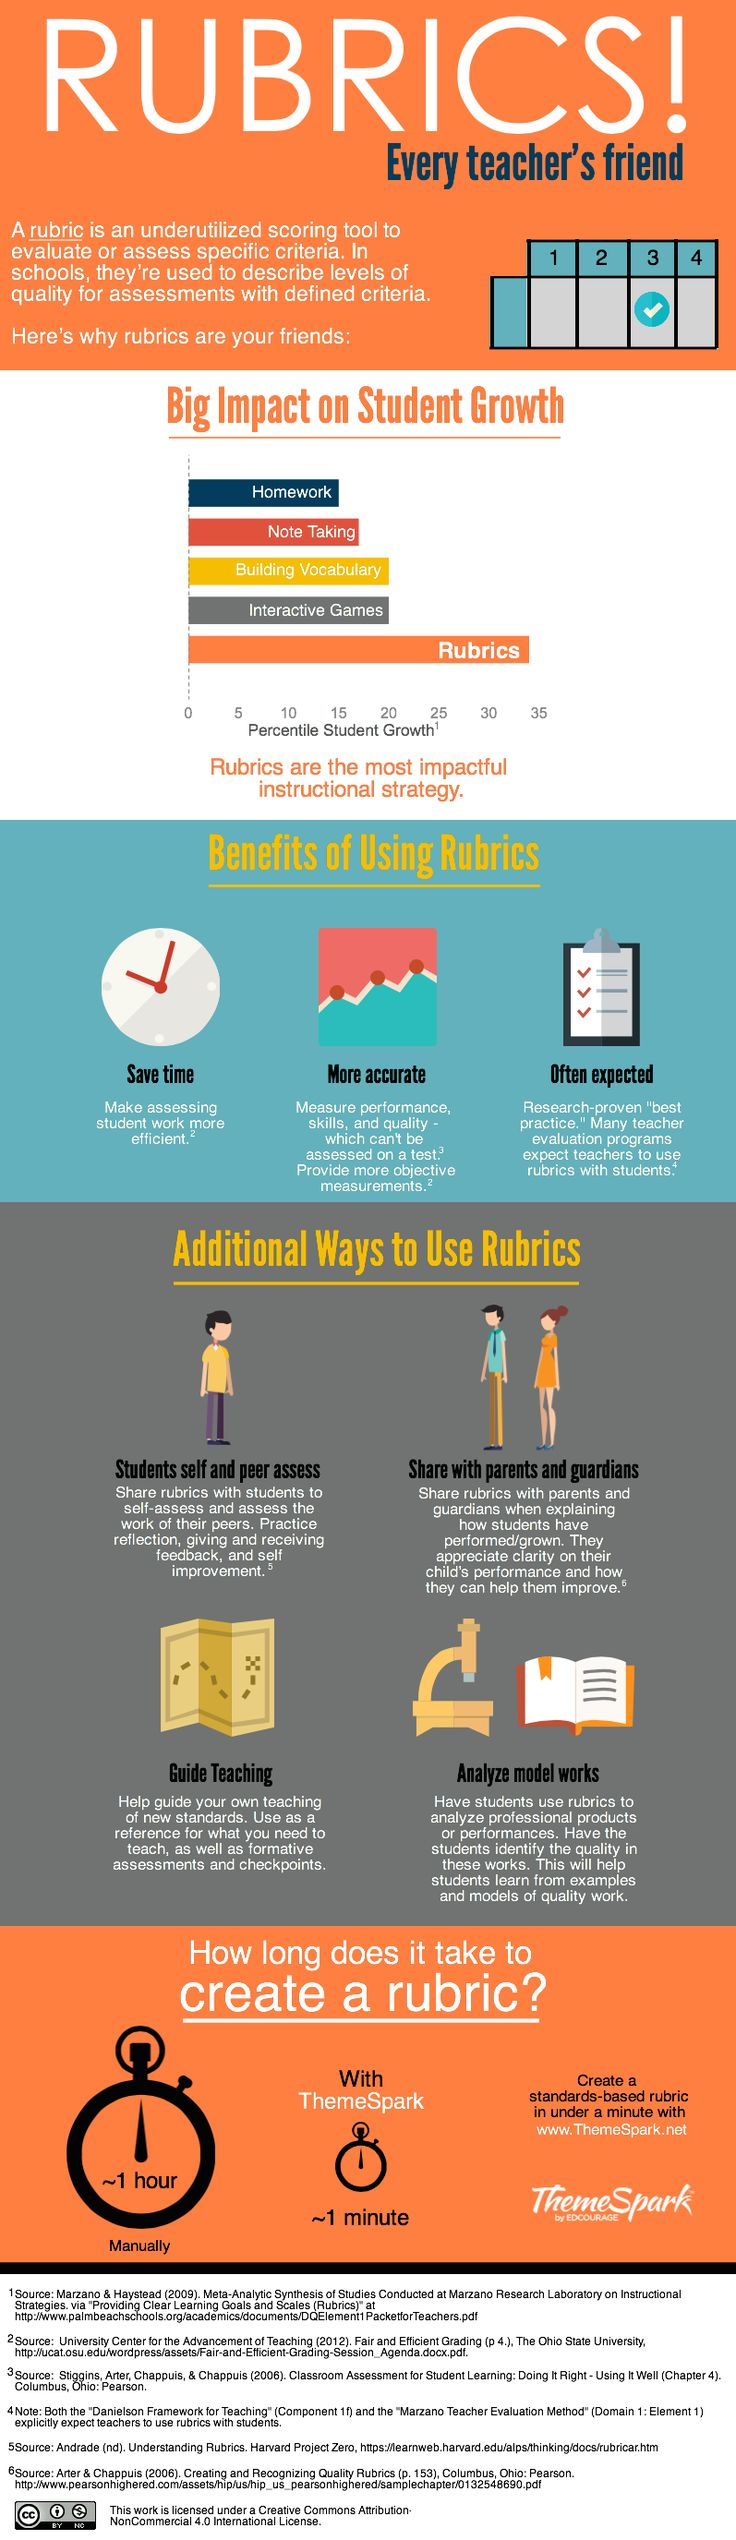 Infographic powerpoints for teachers